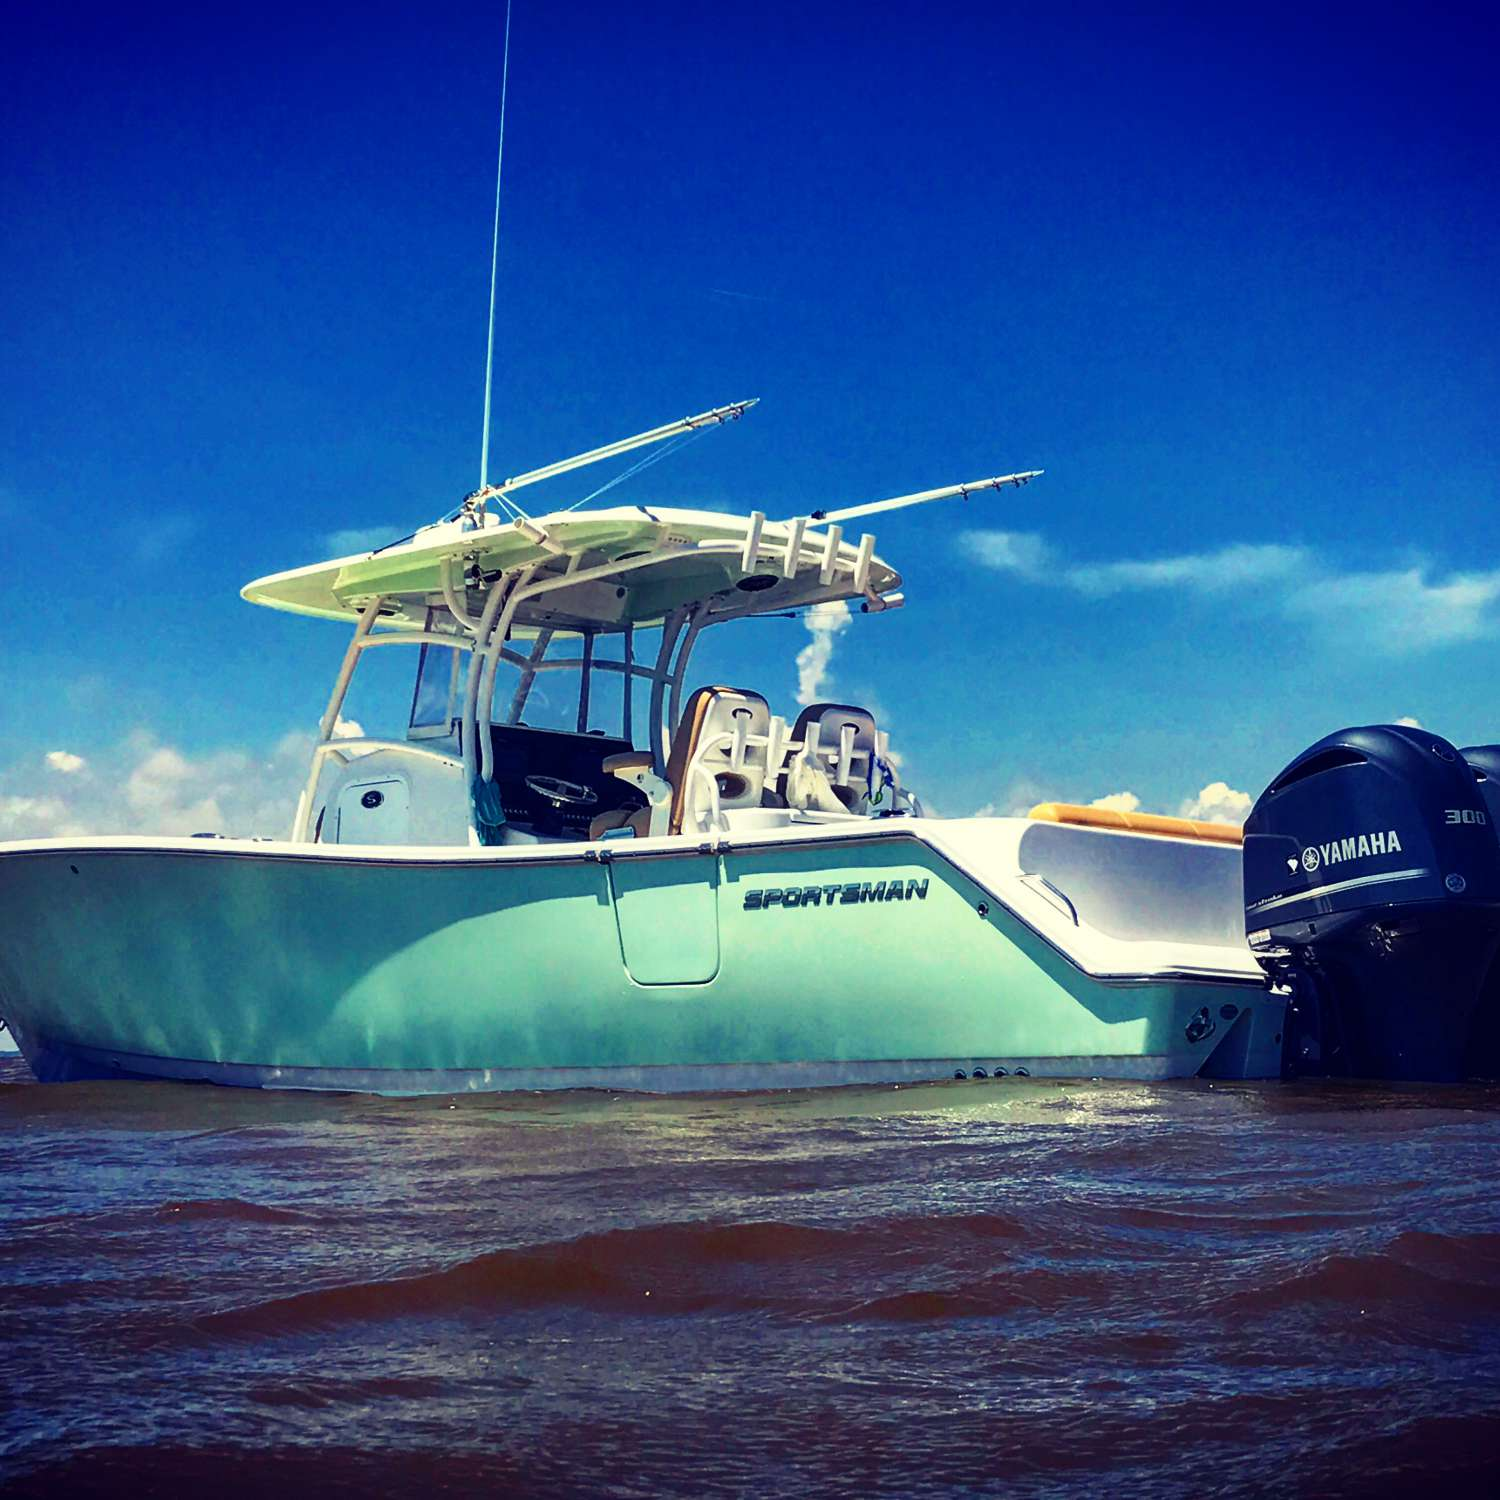 Title: Georgetown Sportsman - On board their Sportsman Open 312 Center Console - Location: Manning, South Carolina. Participating in the Photo Contest #SportsmanAugust2017